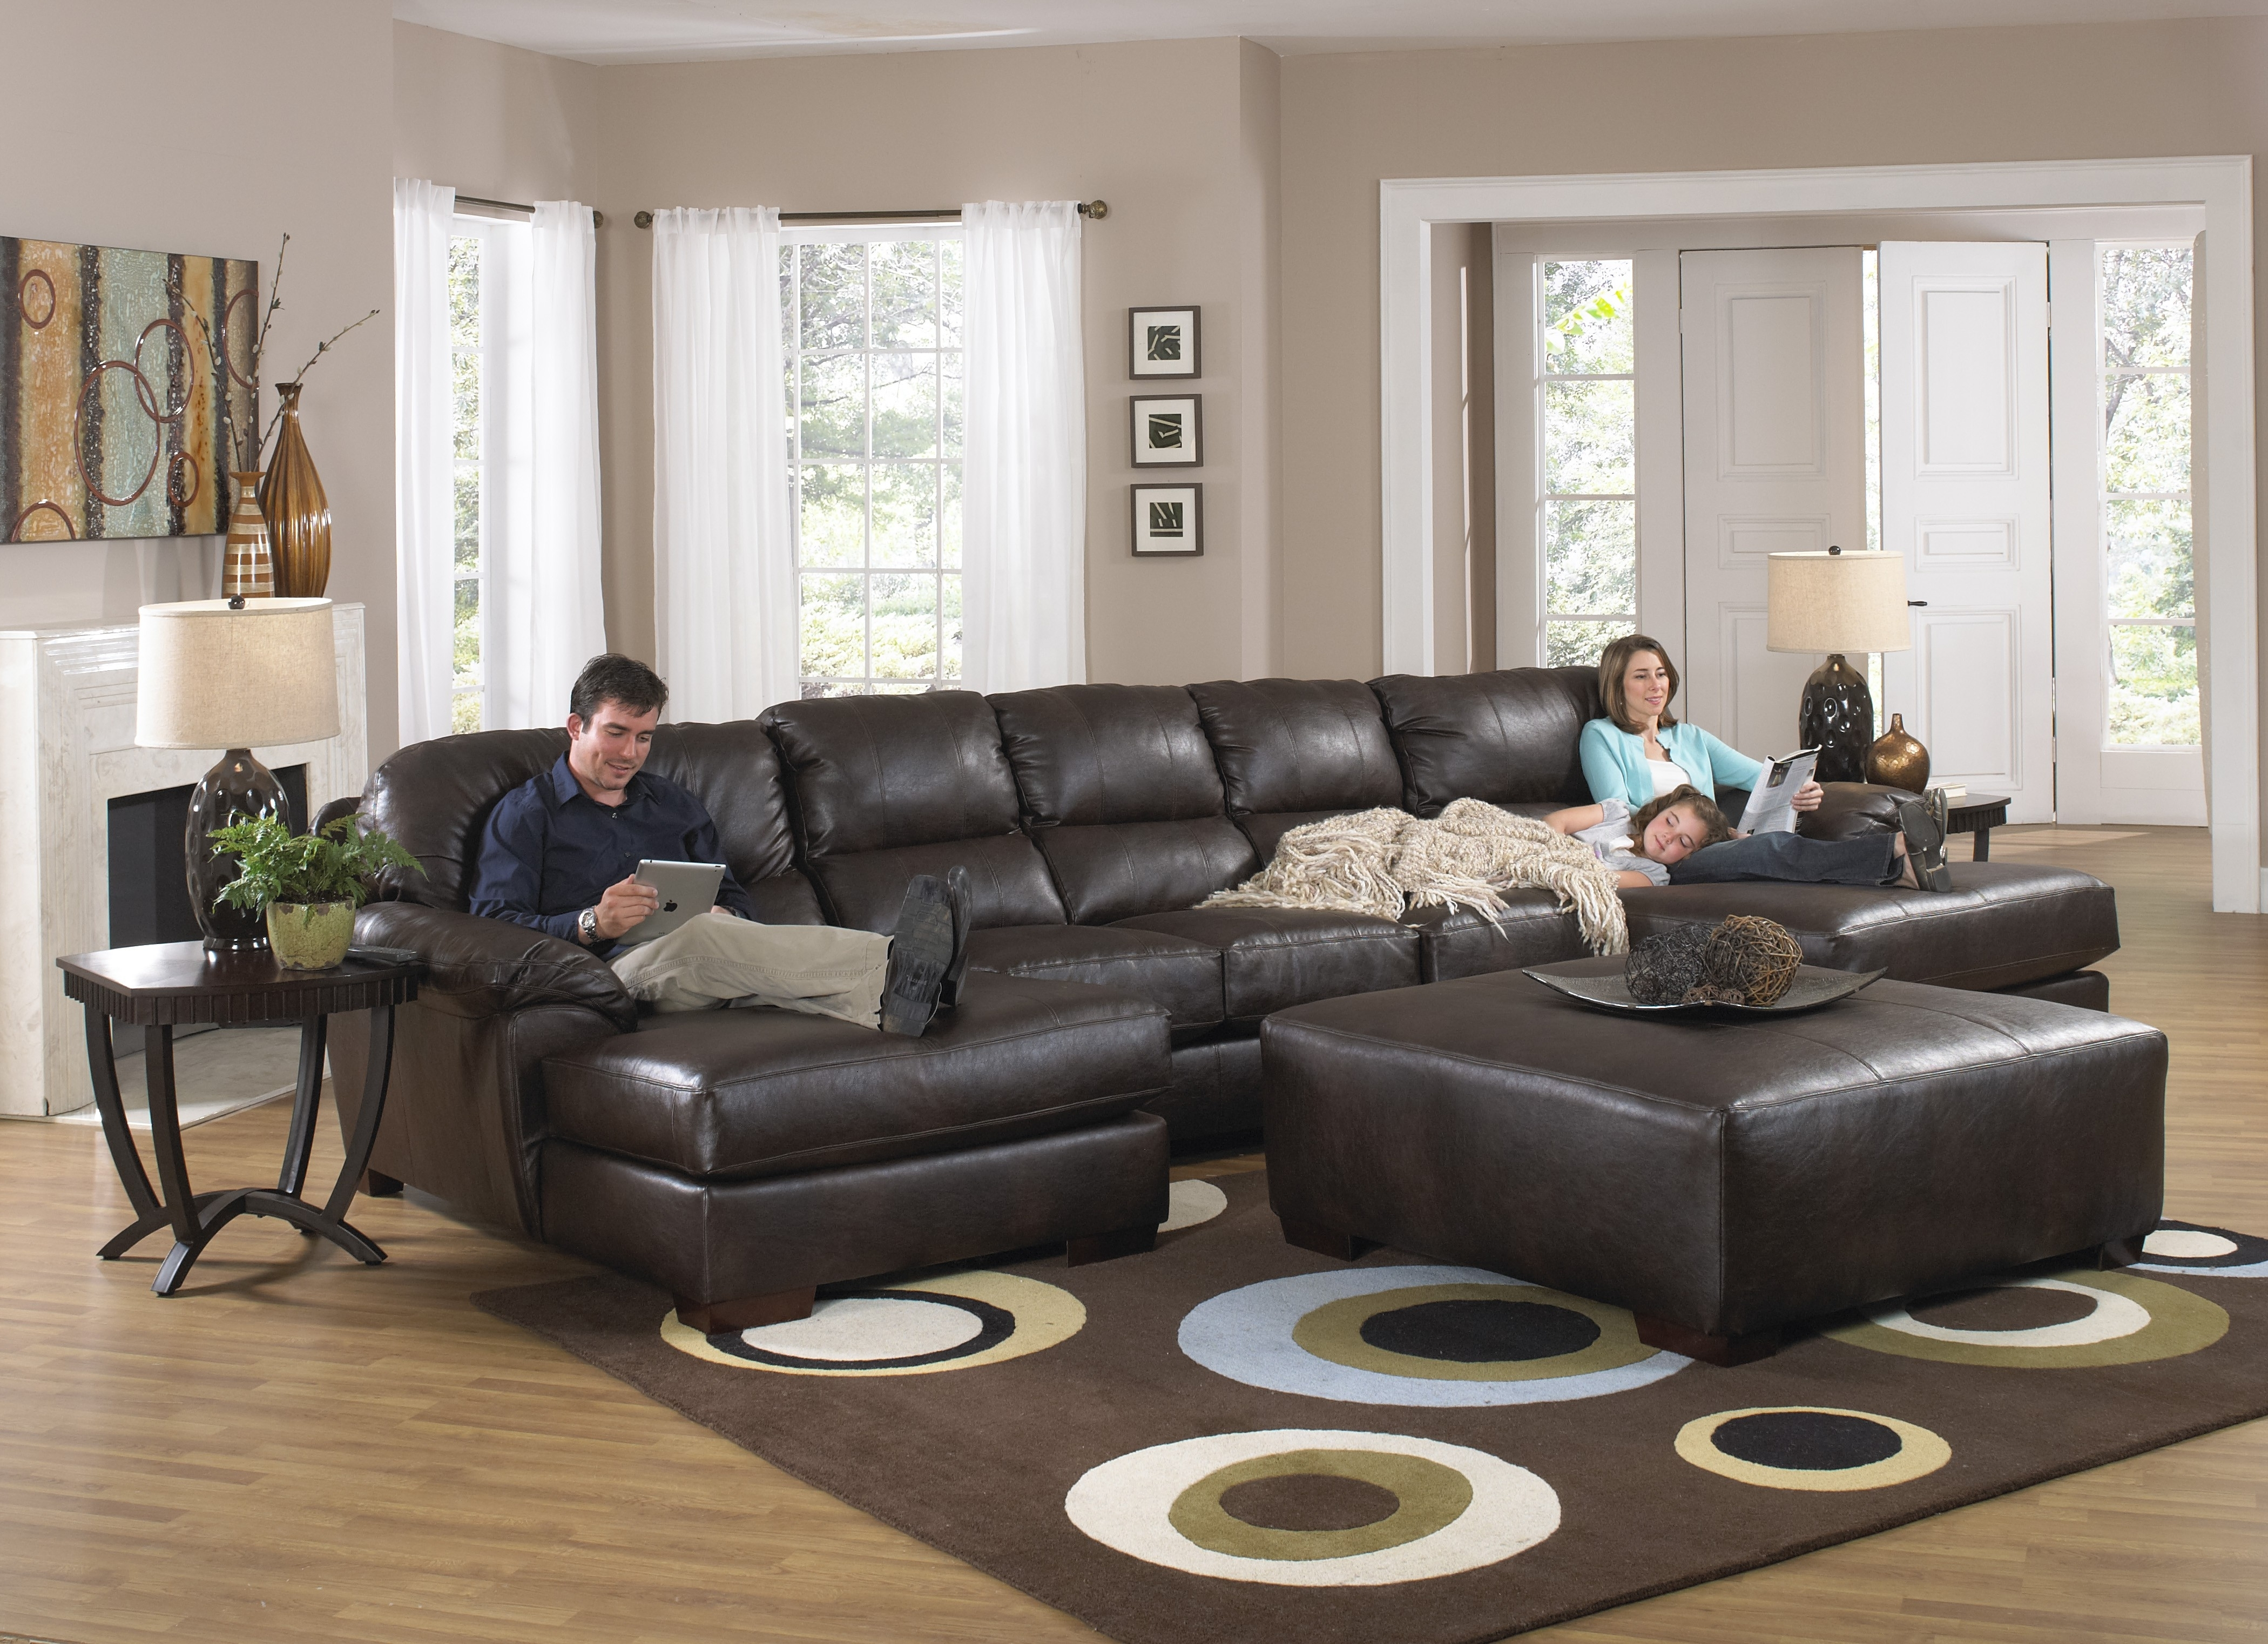 Black Modern Couch Sleeper Sofa Leather Sectionals With Recliners With Regard To Newest Couches With Chaise And Recliner (View 2 of 15)